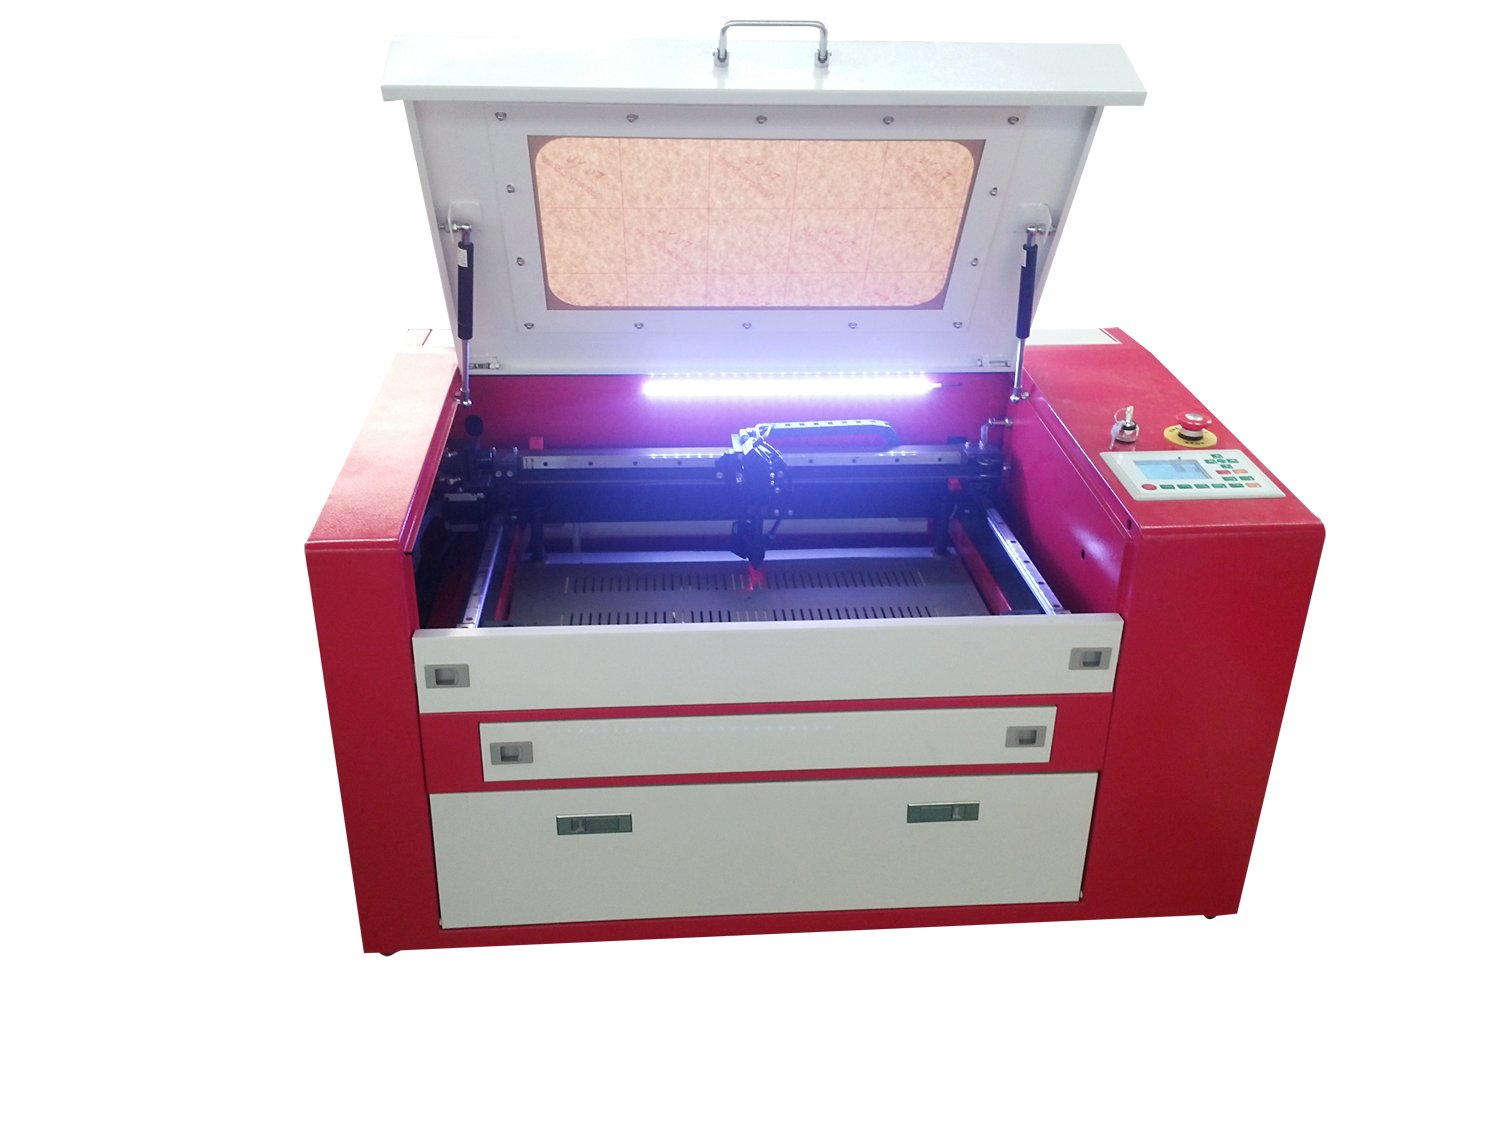 MegaLane 50W CO2 Laser Cutter Engraver Cutting Engraving Machine 300500MM Electric Up&Down Worktable,Red Dot Positioning DSP Control,Rotary Device Included